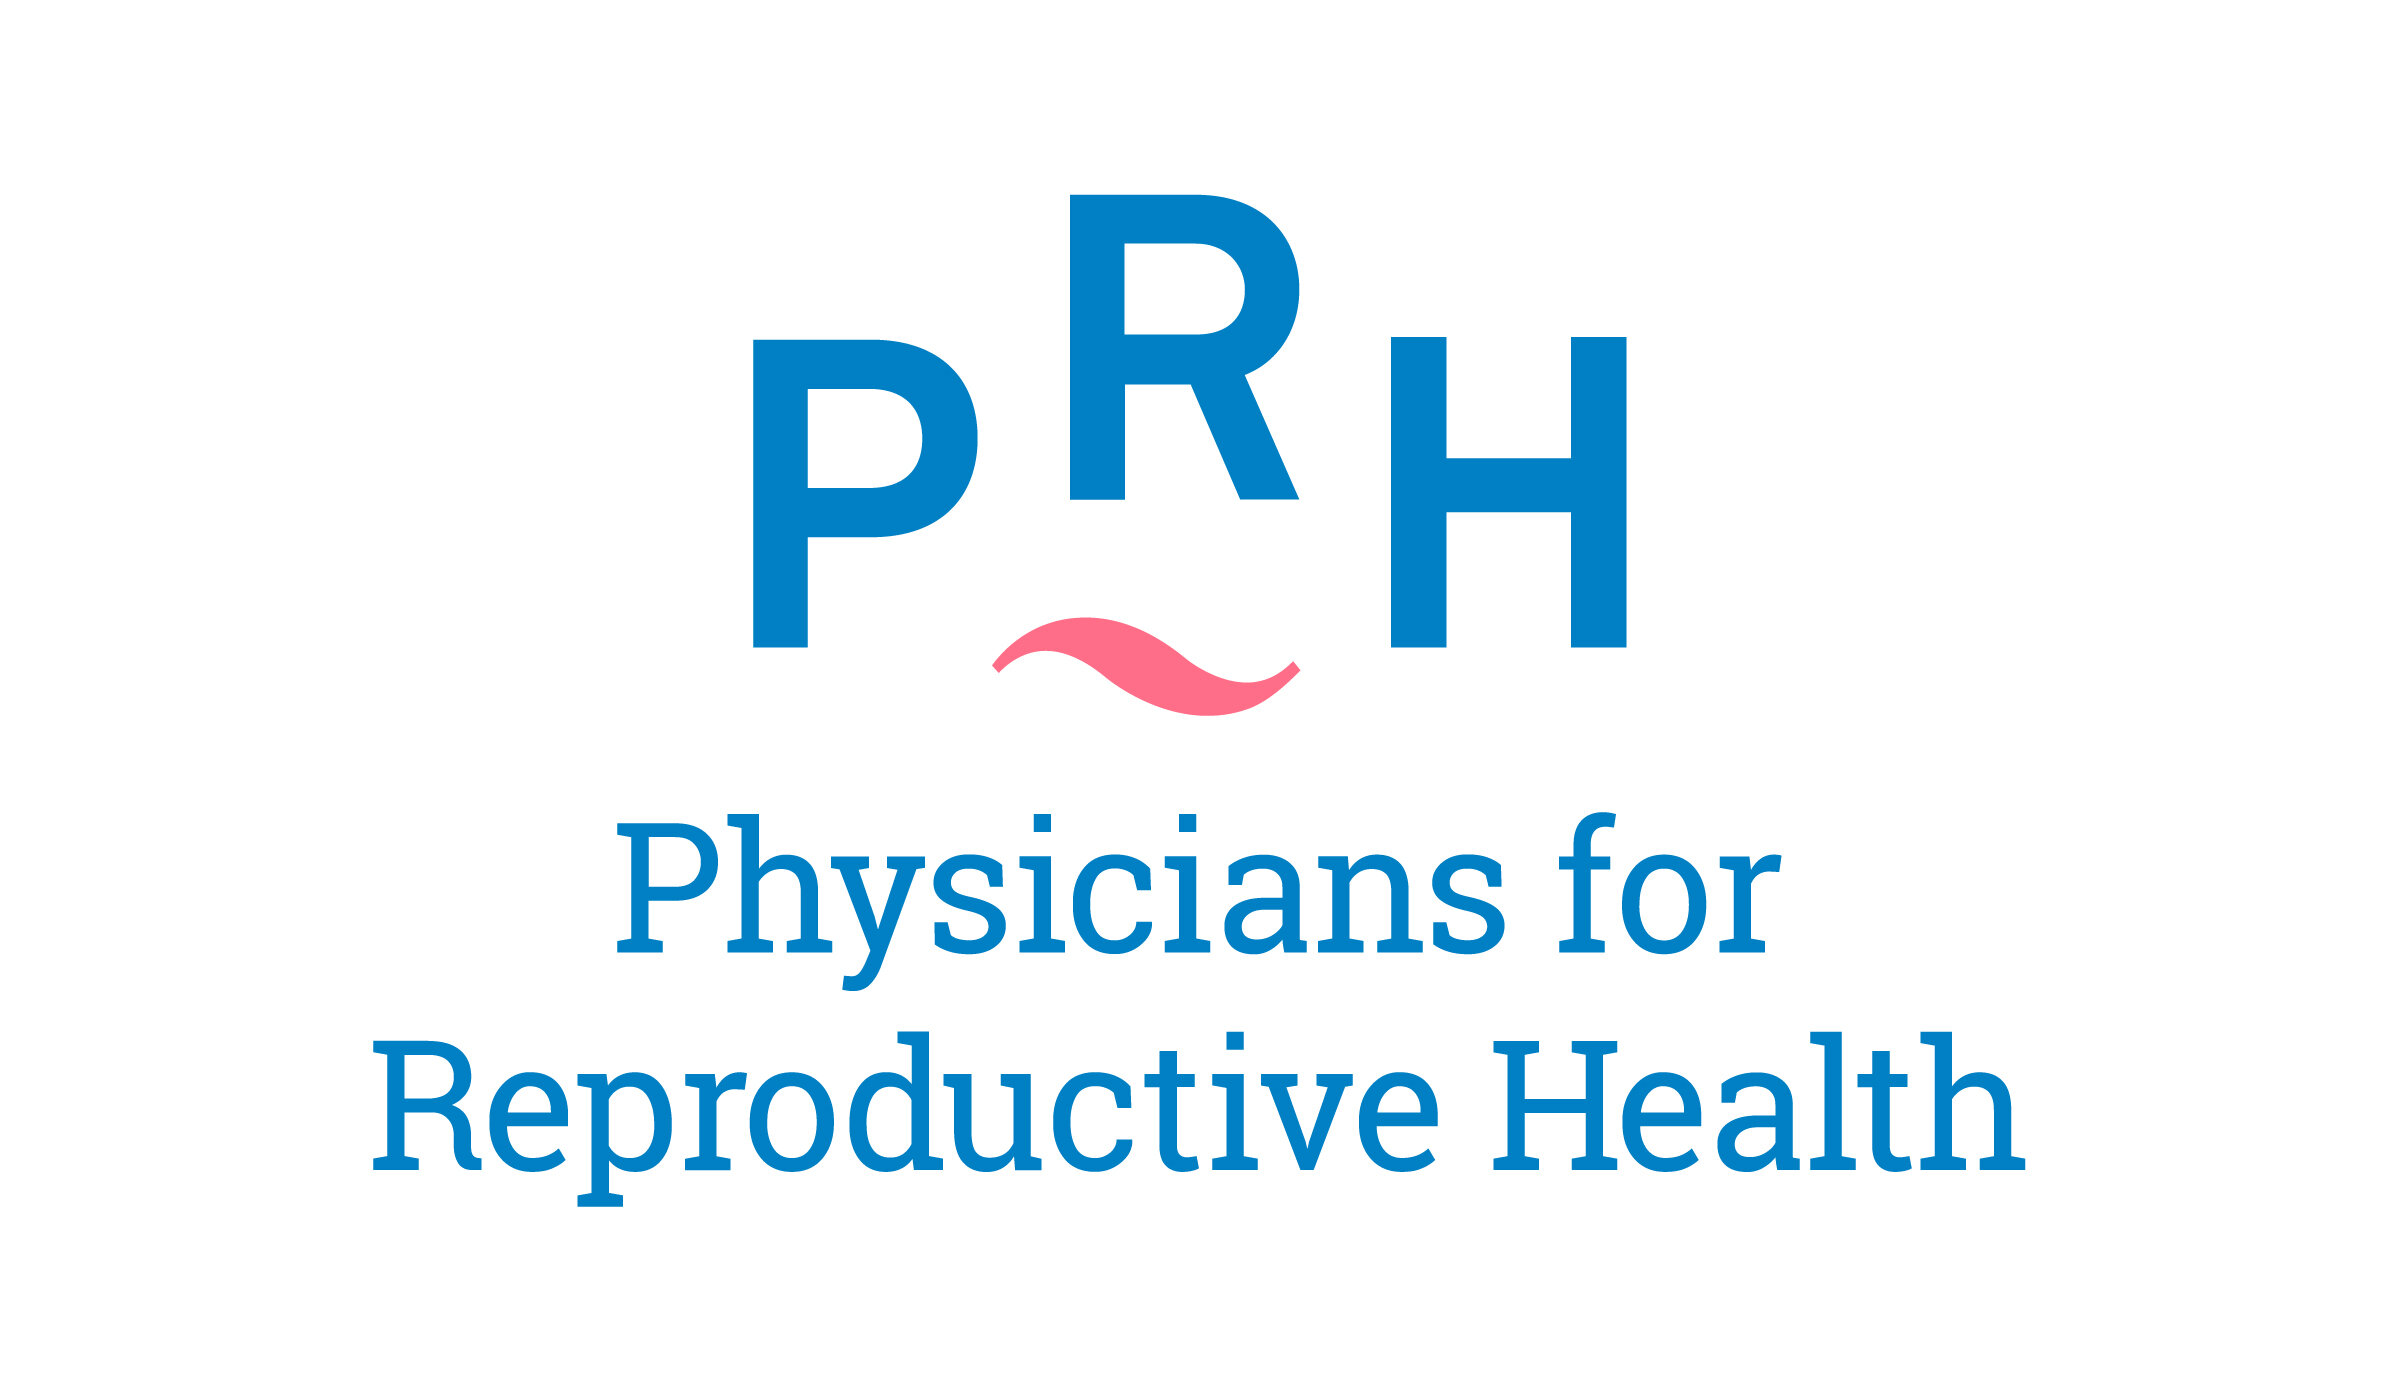 Physicians for Reproductive Health